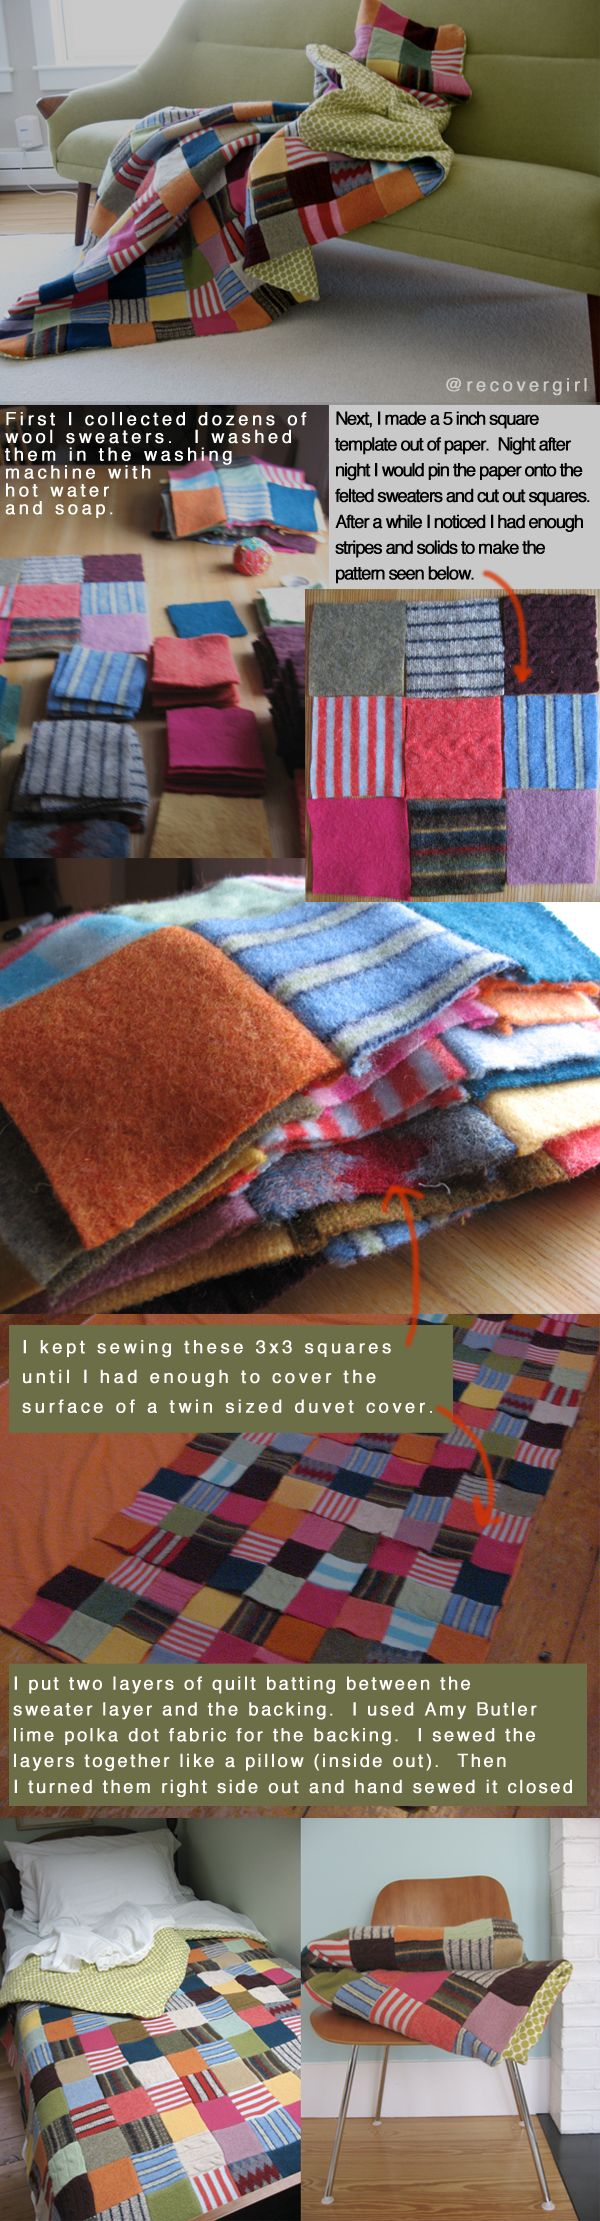 Quilt top from felted sweaters.: Wool Sweaters, Sweaters Blankets, Sweaters Quilts, Upcycled Sweater, Felt Wool, Old Sweaters, Recycled Sweaters, Wool Quilts, Felt Sweaters